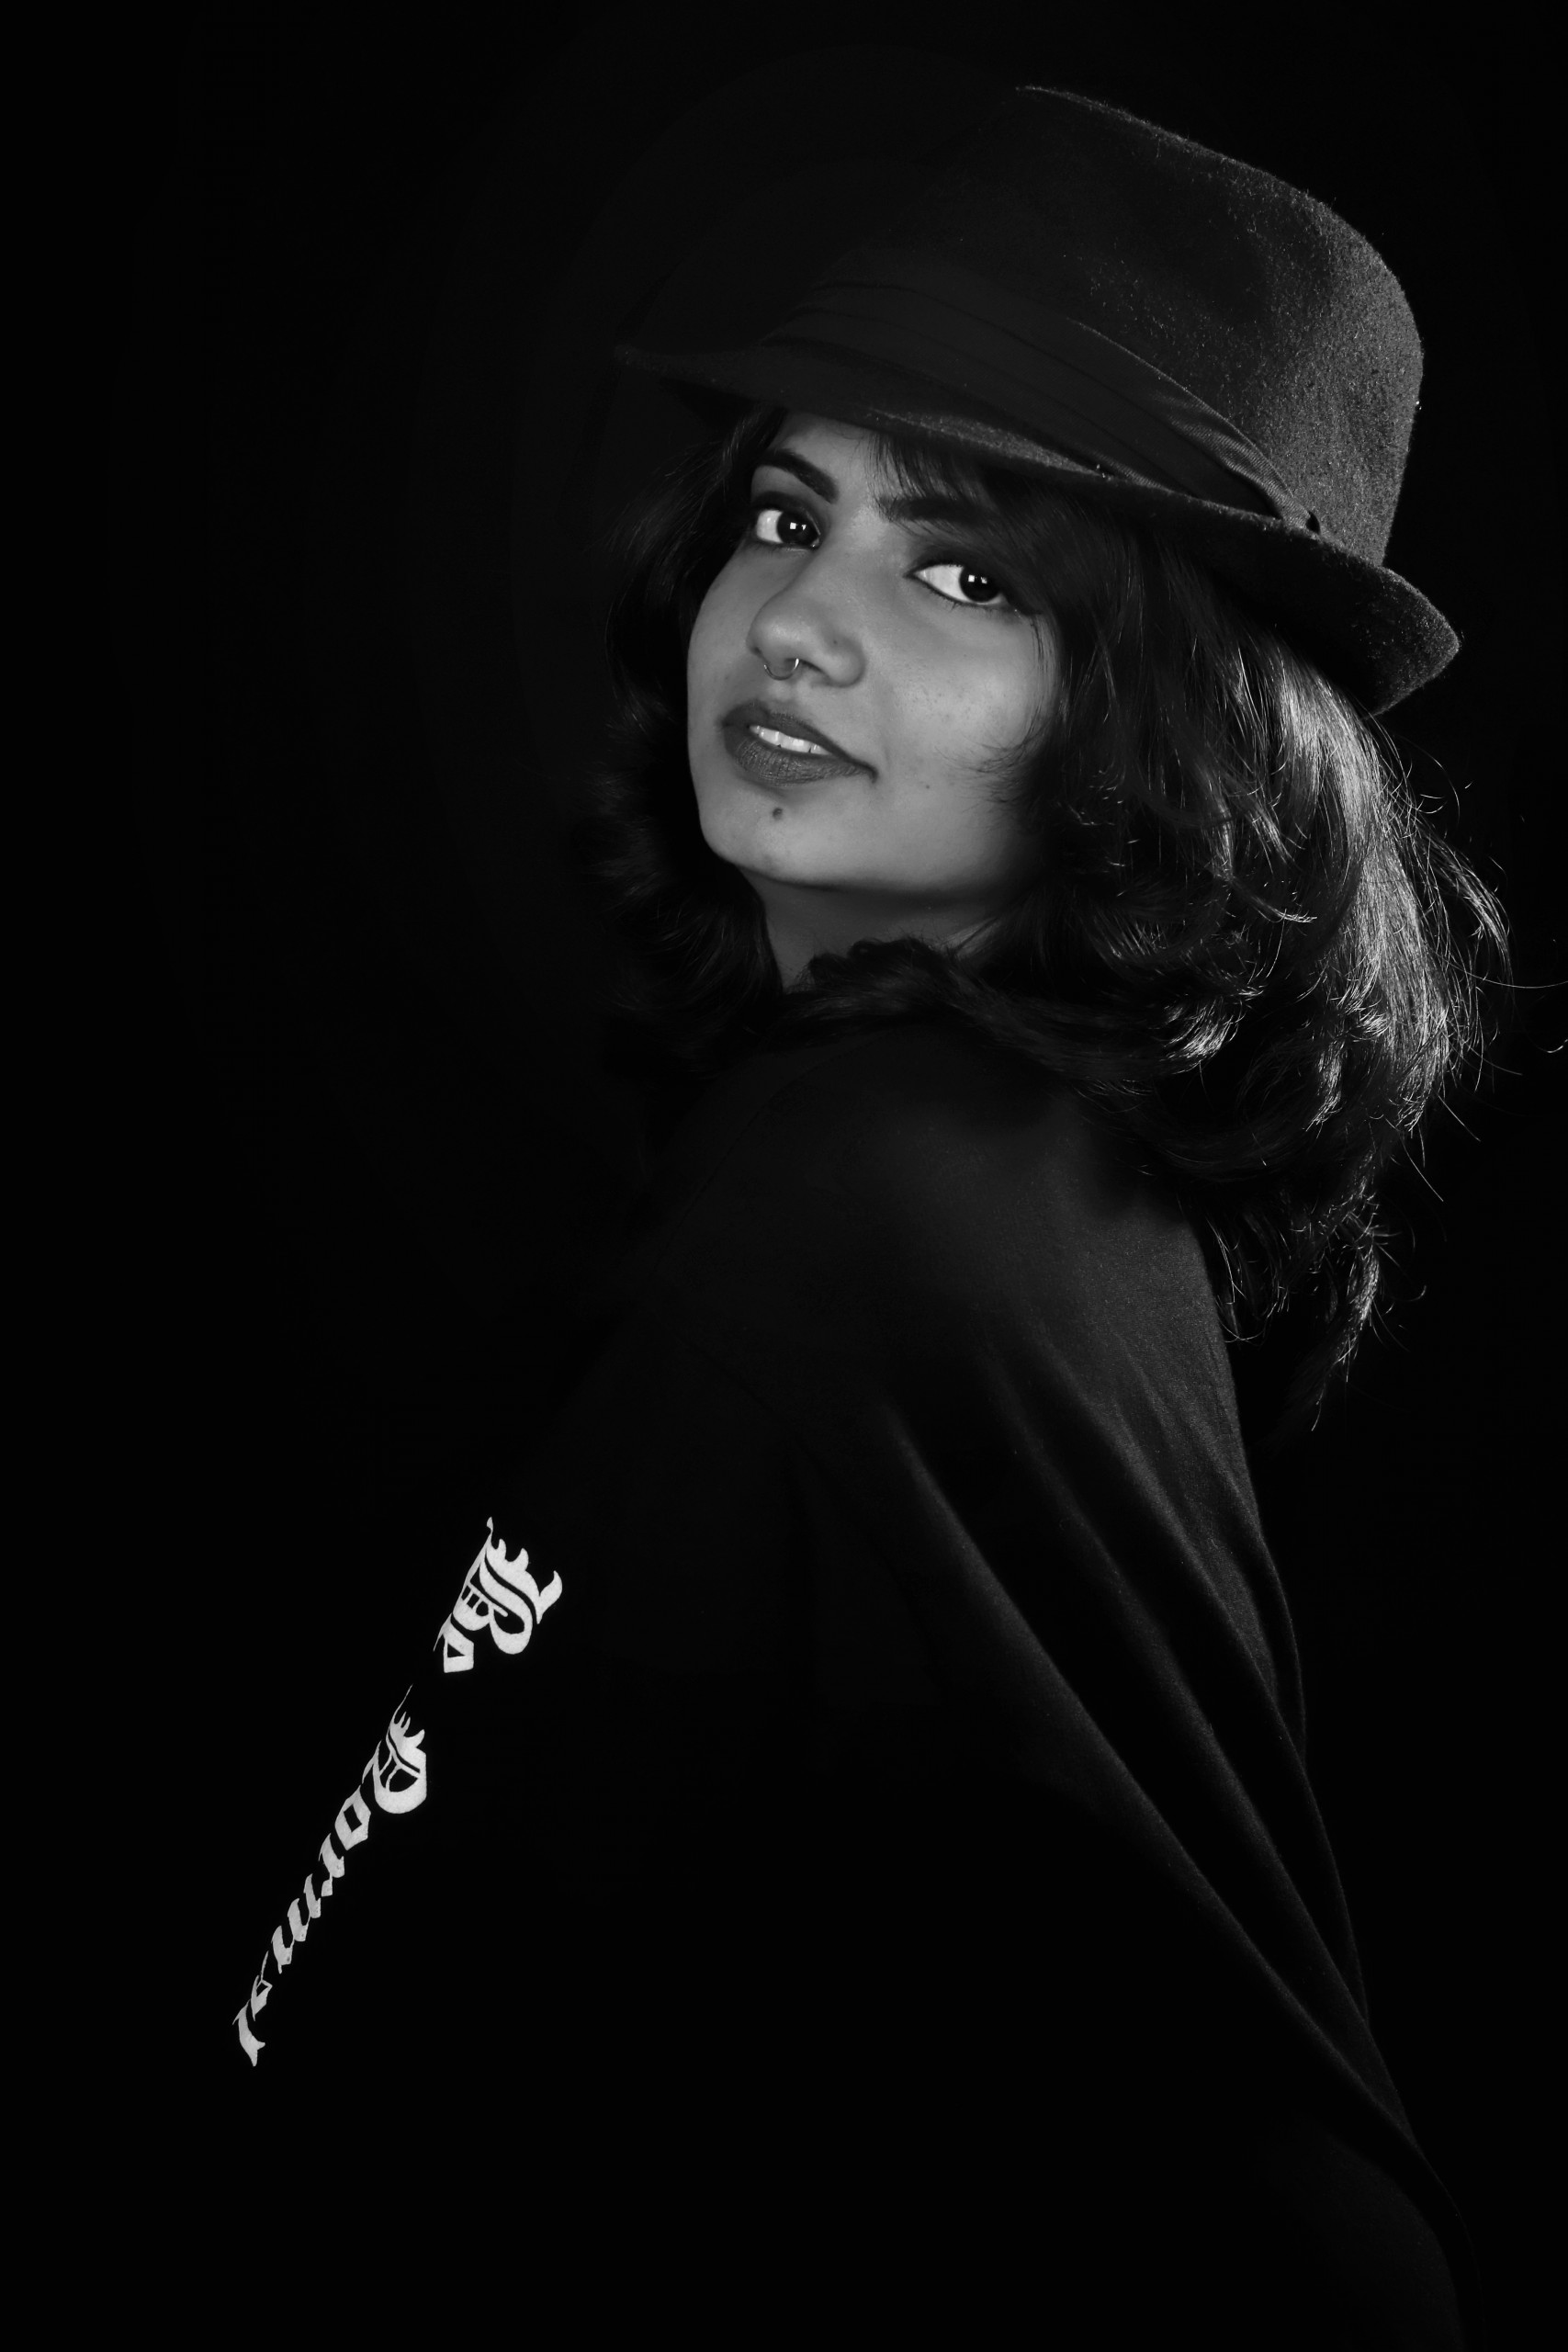 Indian Fashion Model in Black and White